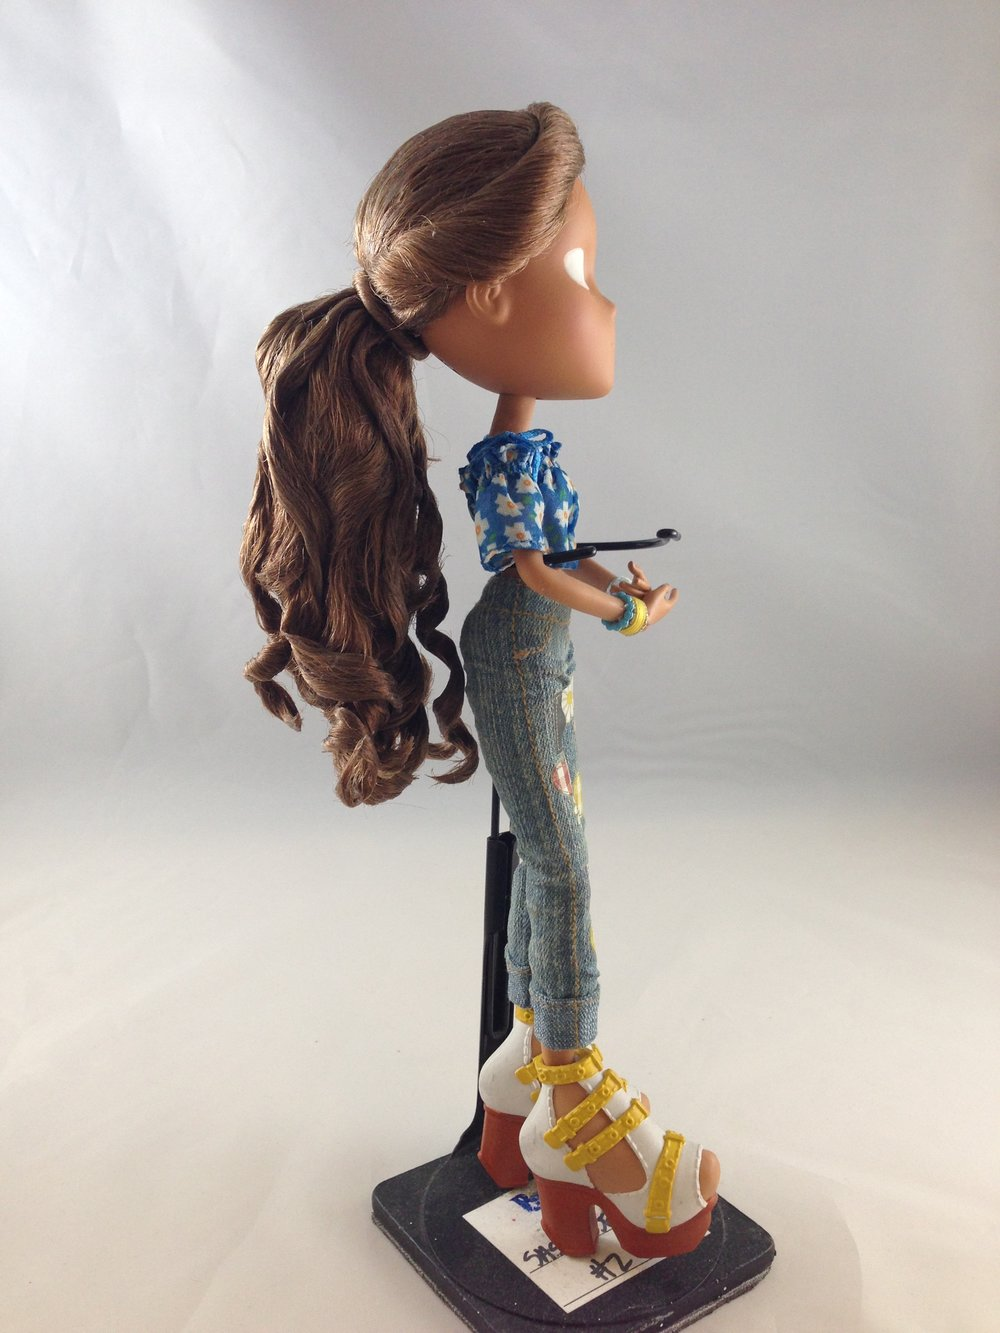 Yasmine - Bratz Webisodes (Hair Fabrication)